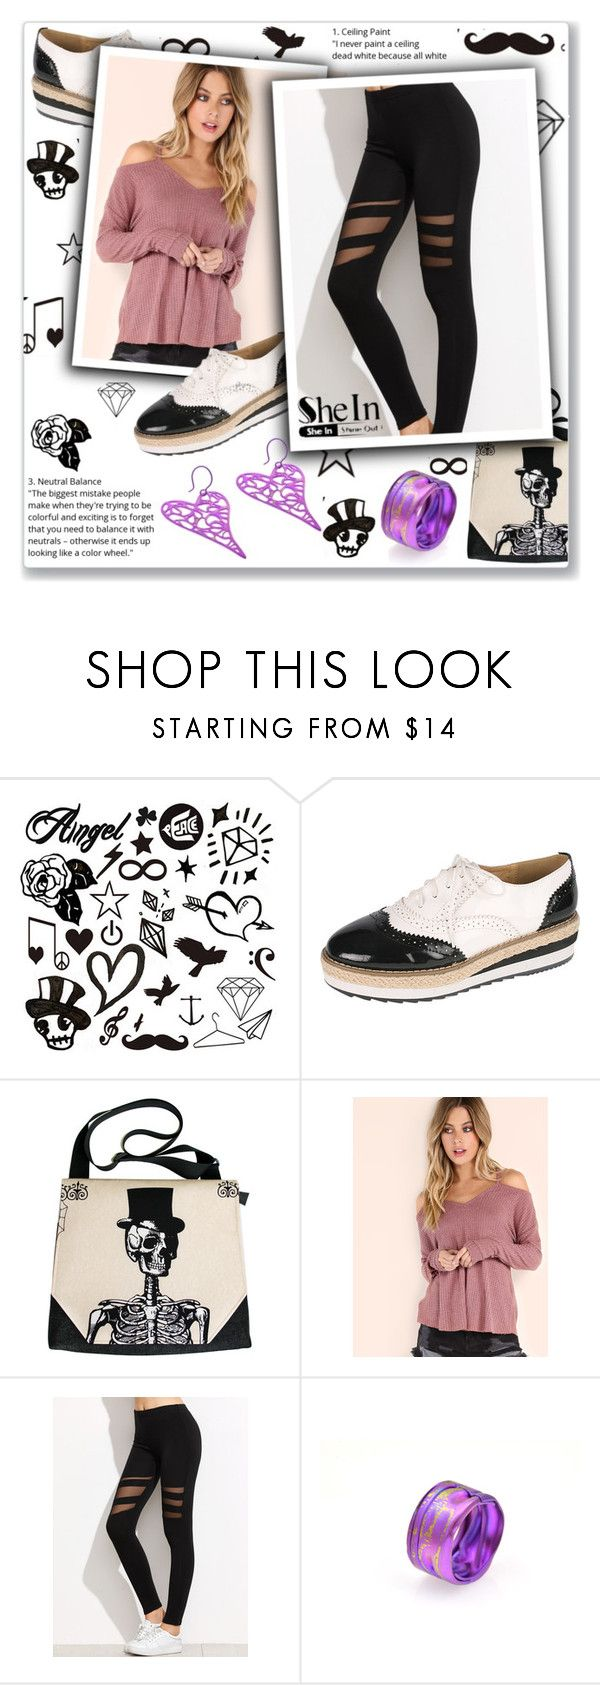 """""""Walk with friends"""" by giampourasjewel ❤ liked on Polyvore featuring shein"""